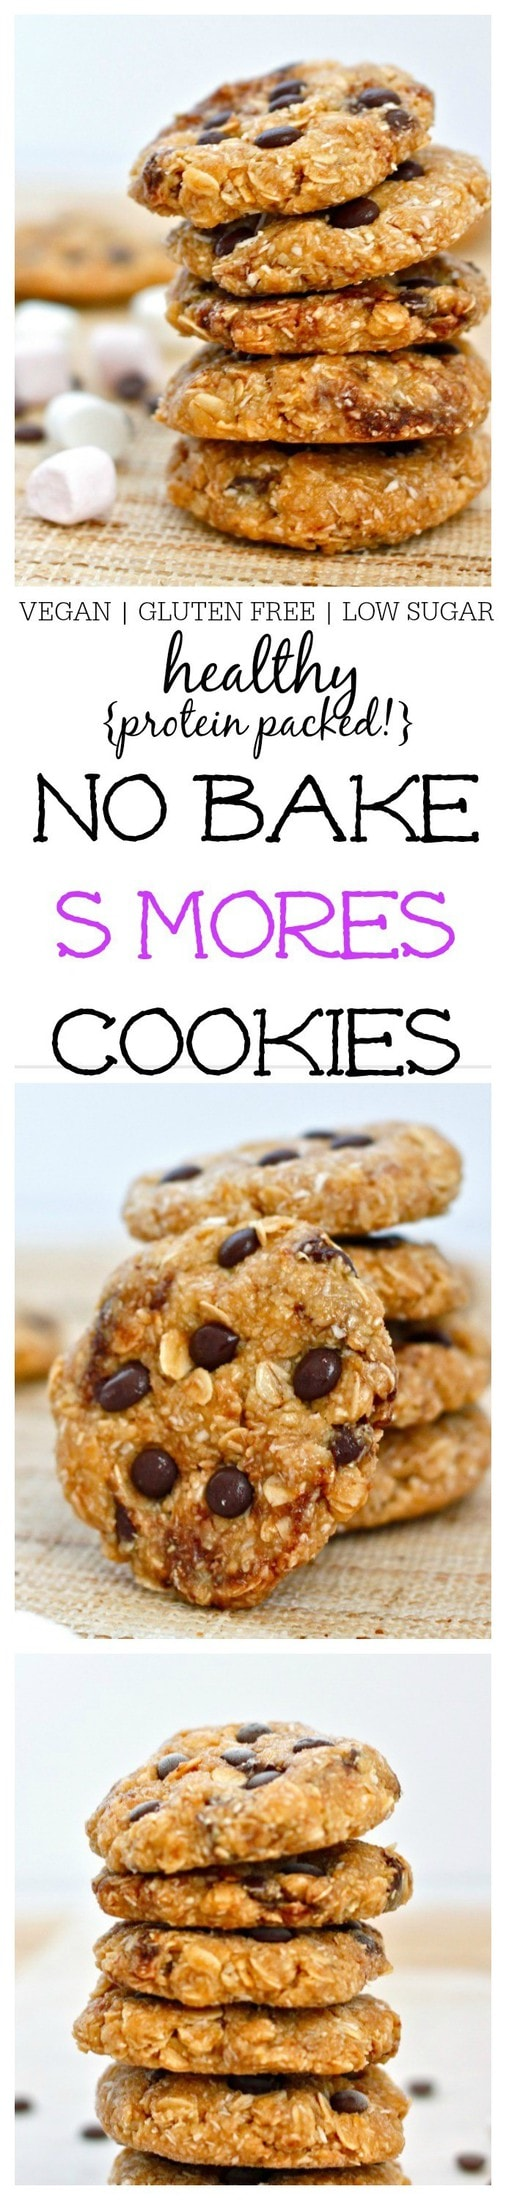 Healthy No Bake S'mores Cookies- Soft and chewy cookies which take 10 minutes to whip up- Vegan, GF + chock full of protein! @thebigmansworld - thebigmansworld.com